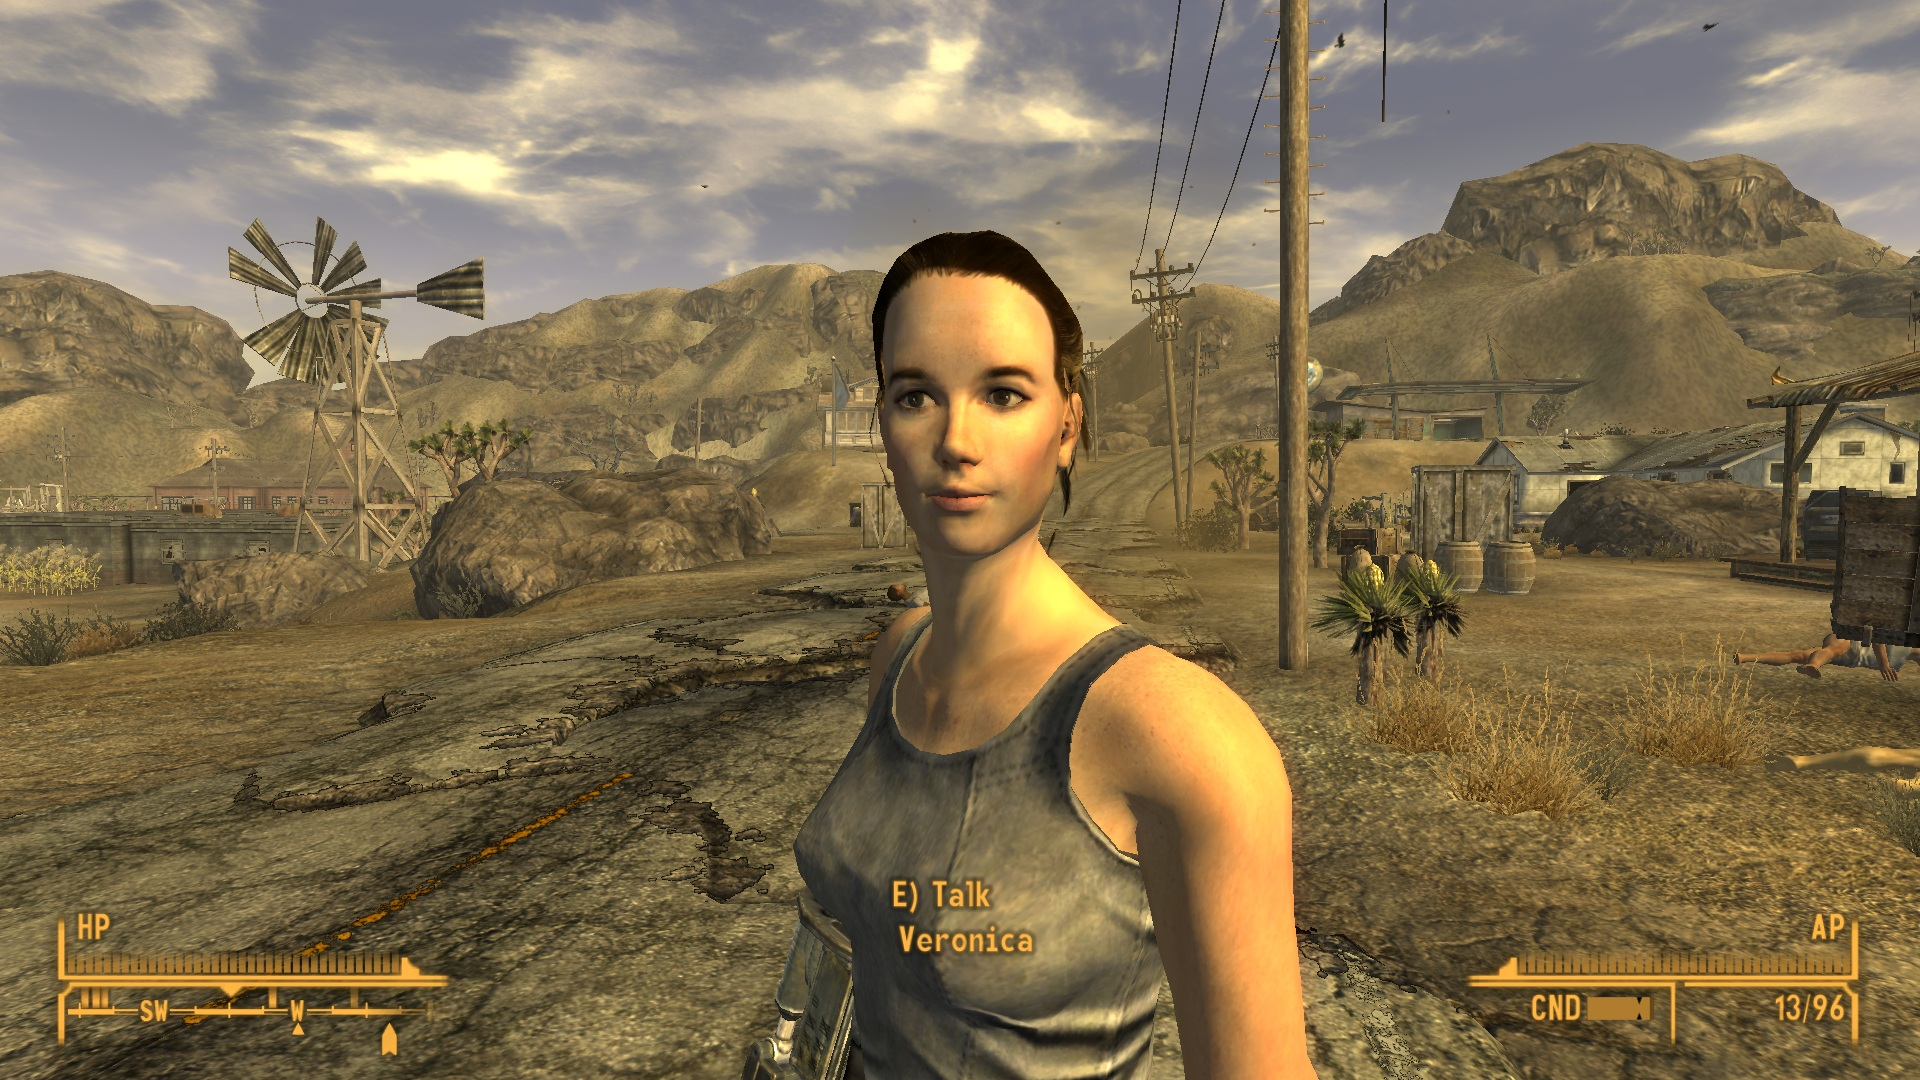 New Vegas Veronica